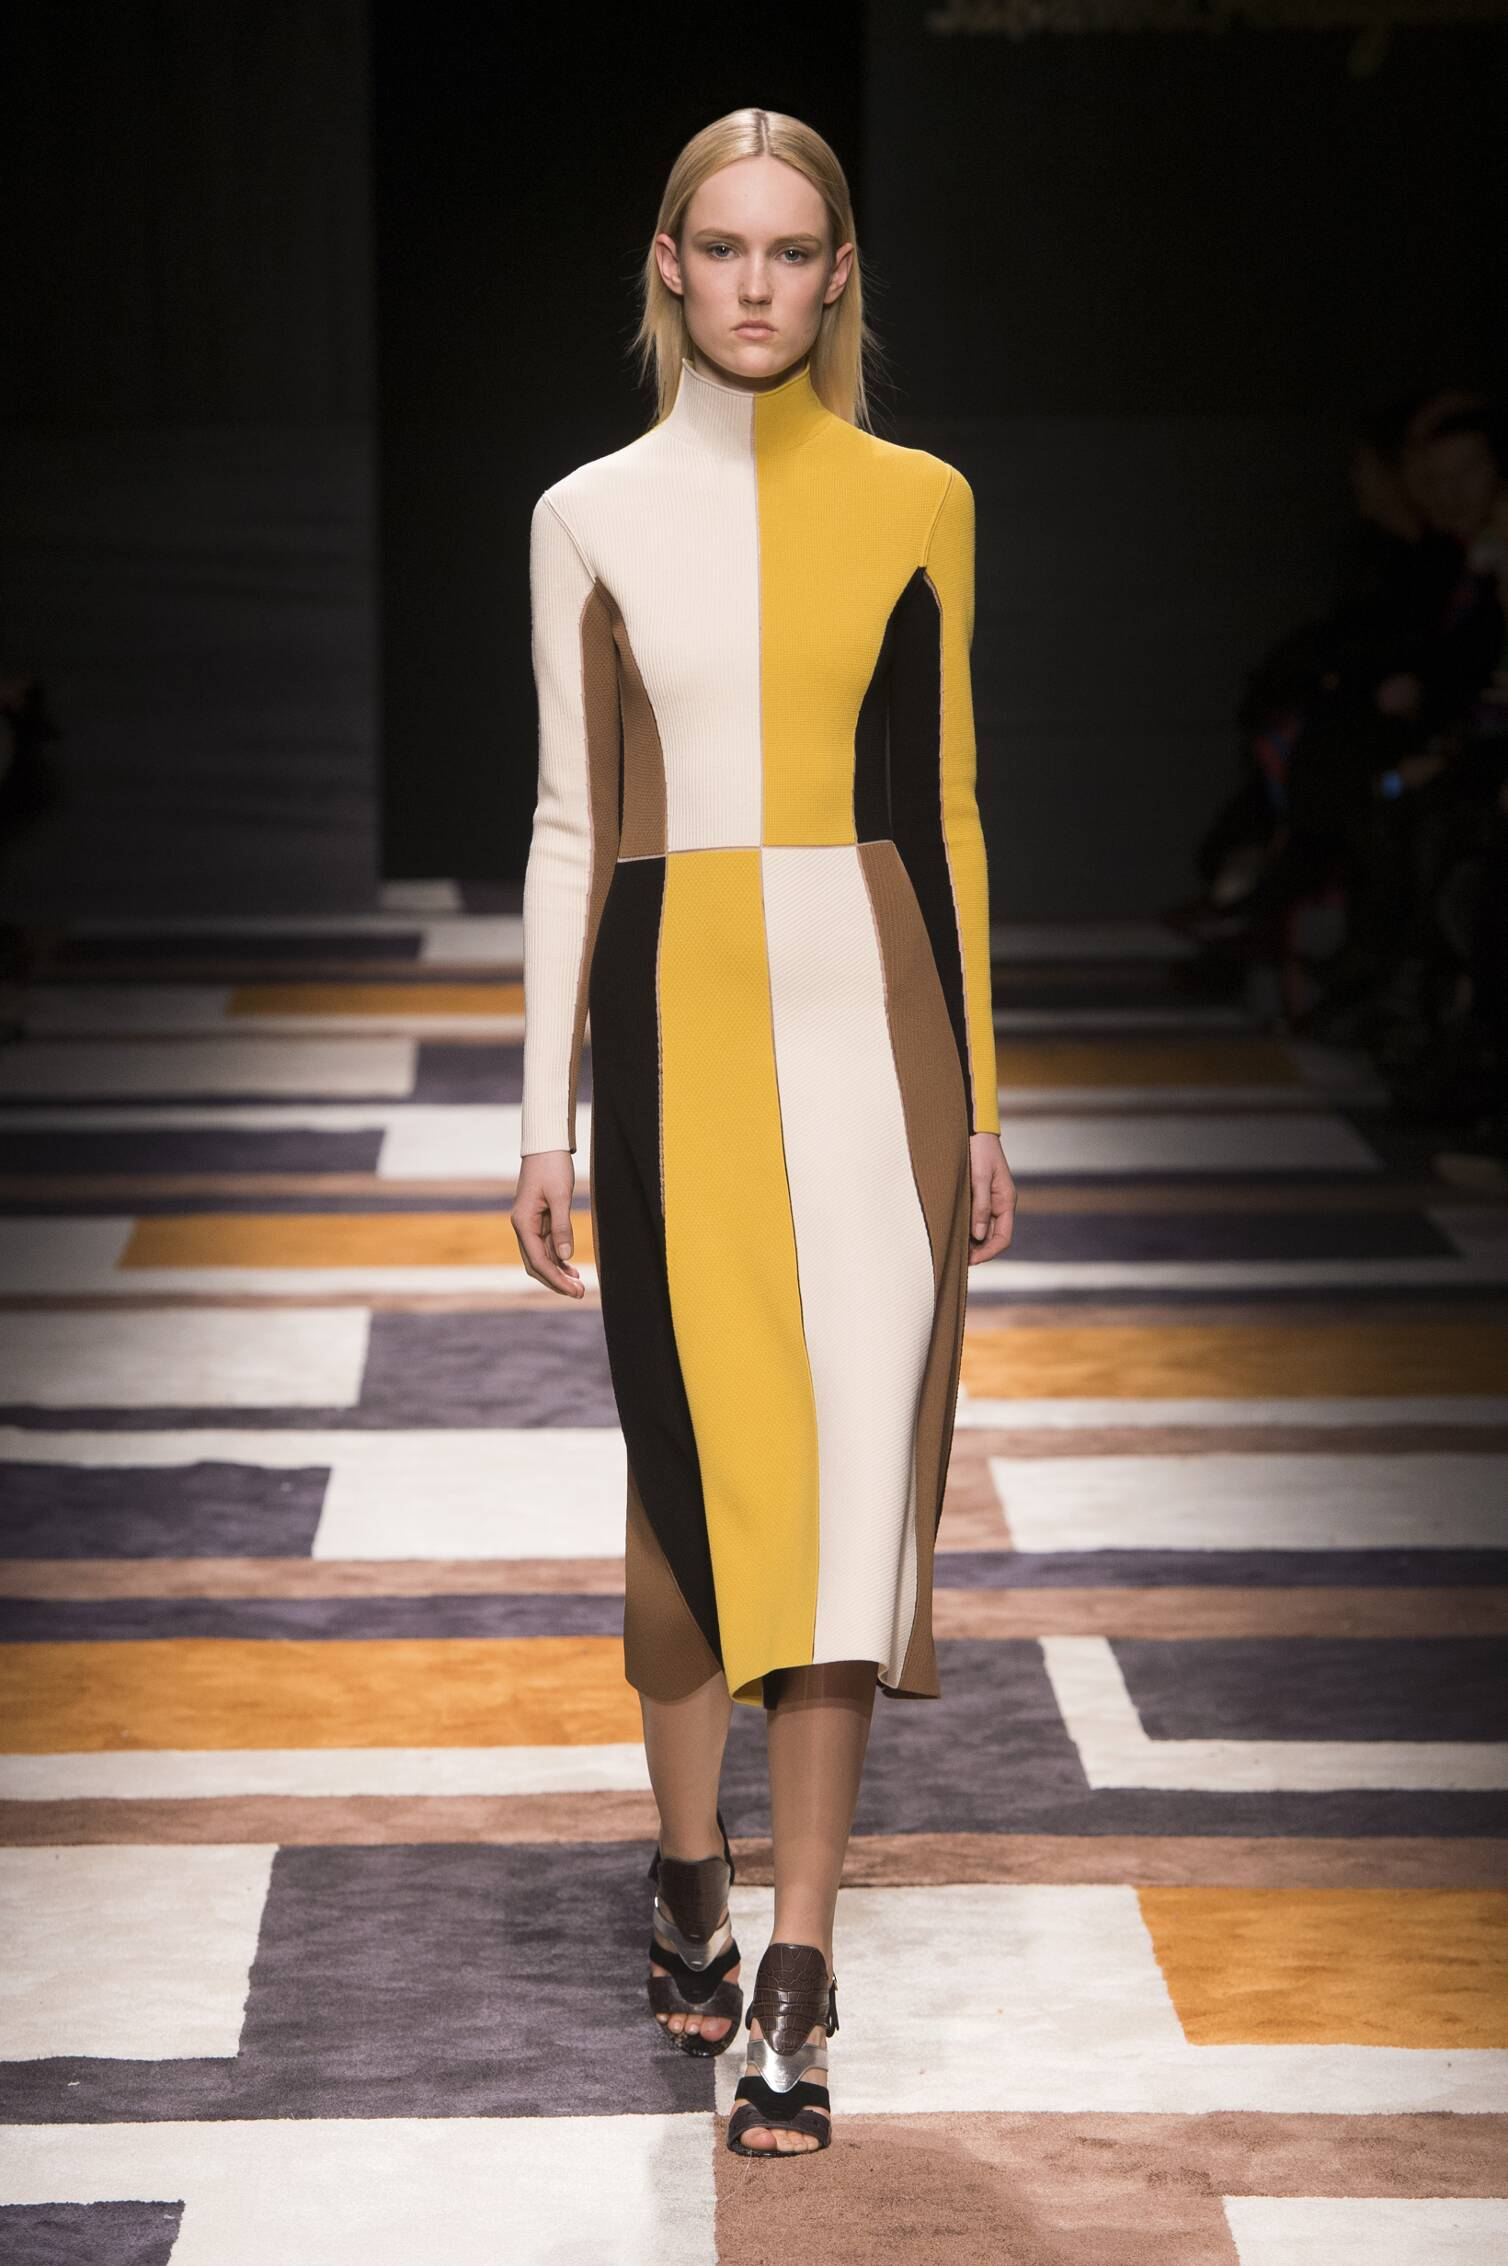 SALVATORE FERRAGAMO FALL WINTER 2015-16 WOMEN'S COLLECTION